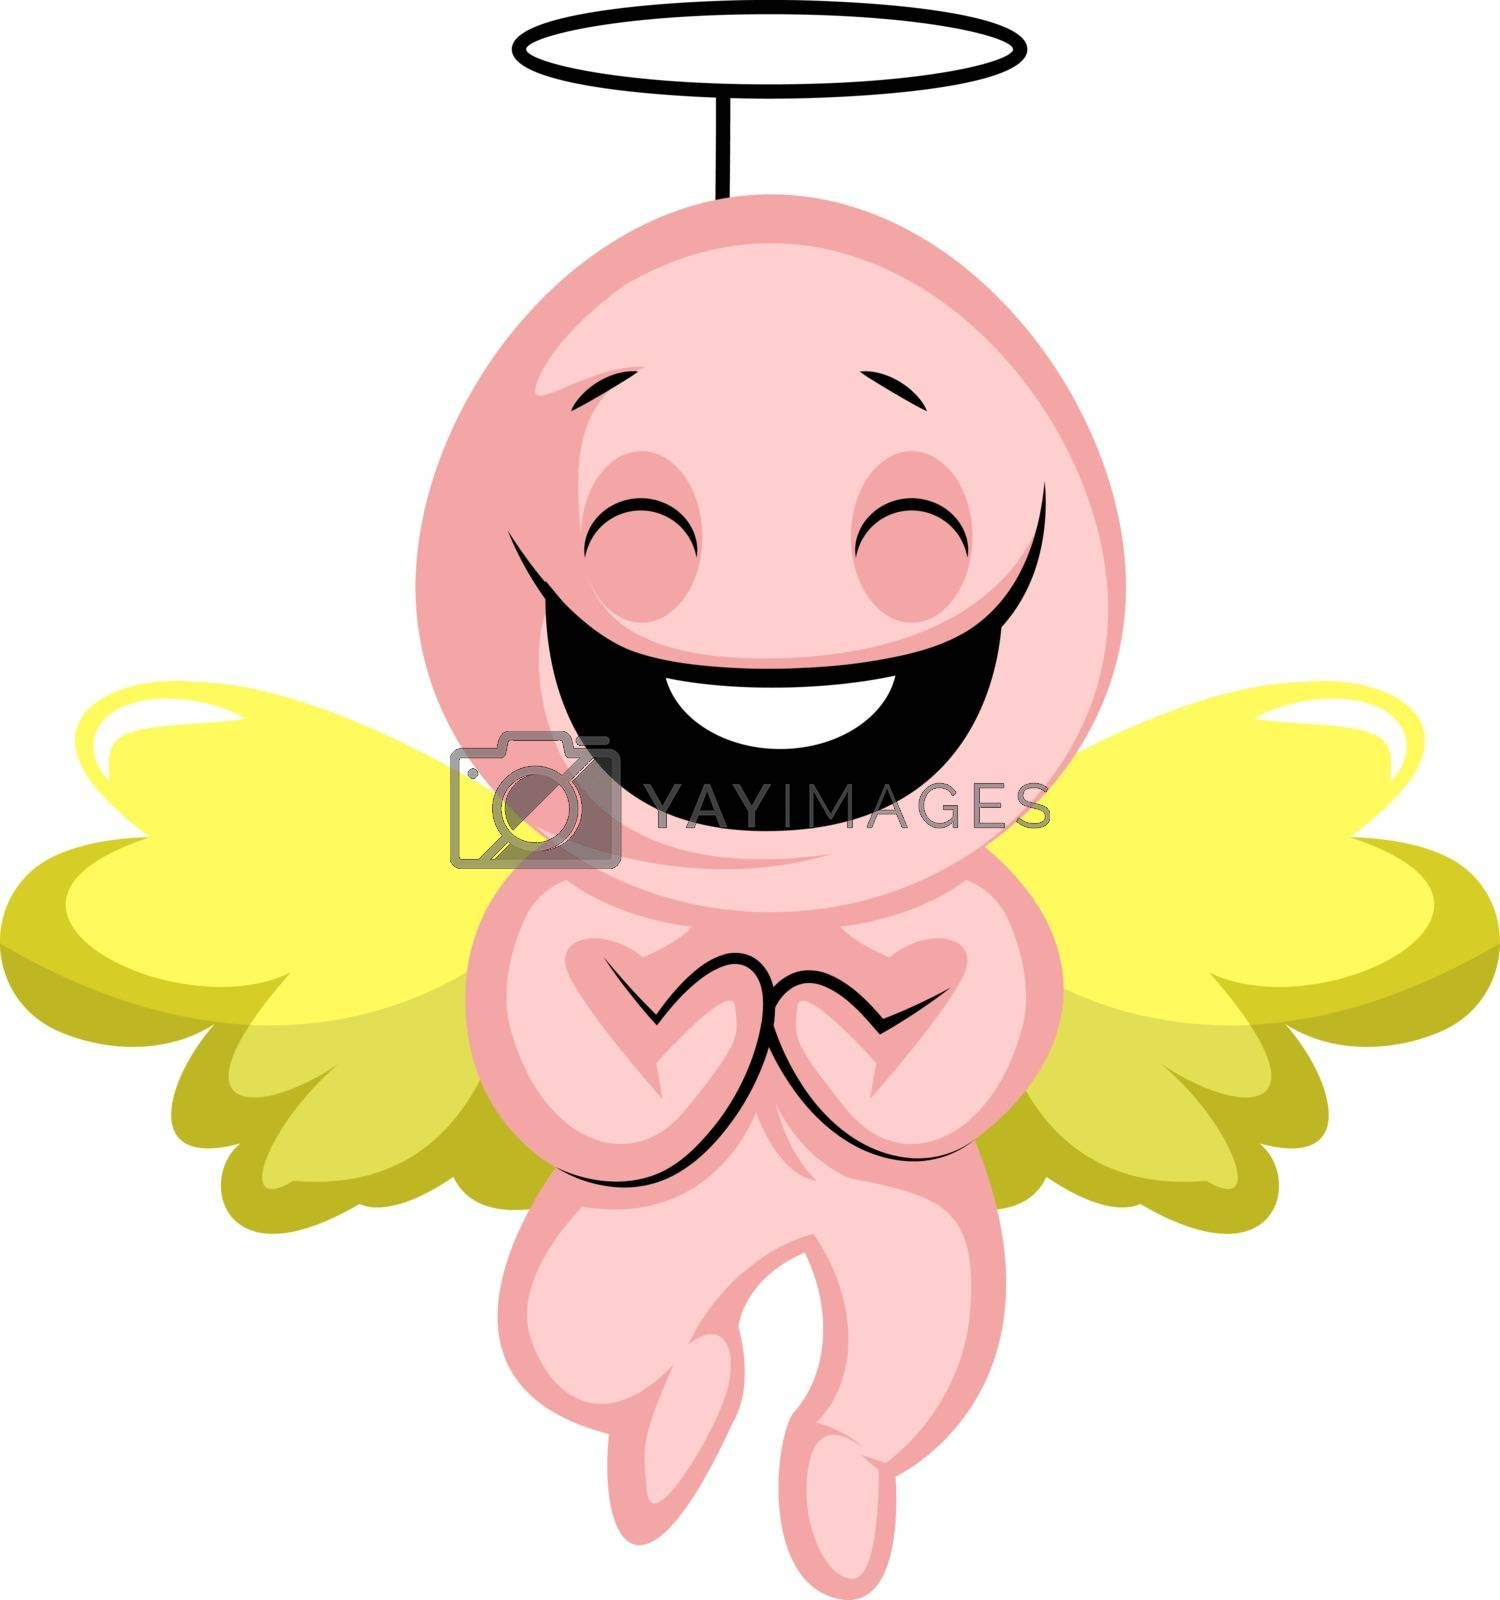 Royalty free image of Cute Valentines day Cupid angel illustration vector on white bac by Morphart